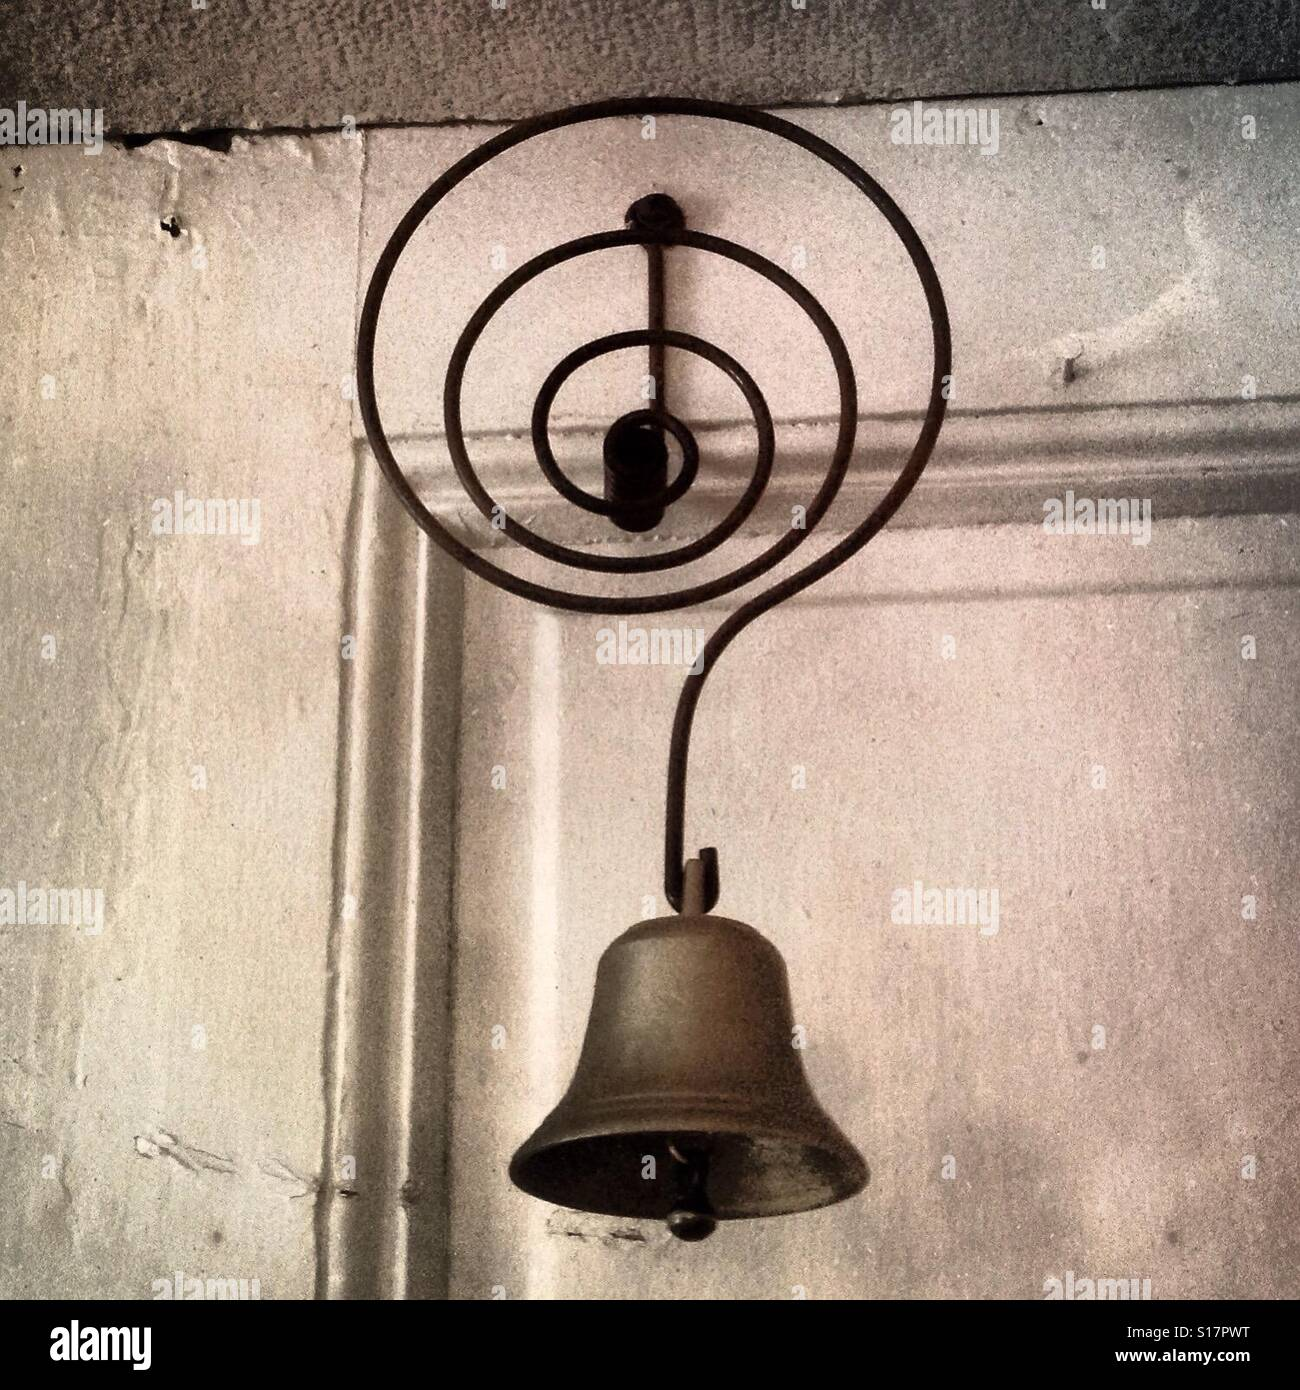 Antique brass bell on the back of the door and early doorbell - Stock Image - Antique Brass Bell Stock Photos & Antique Brass Bell Stock Images